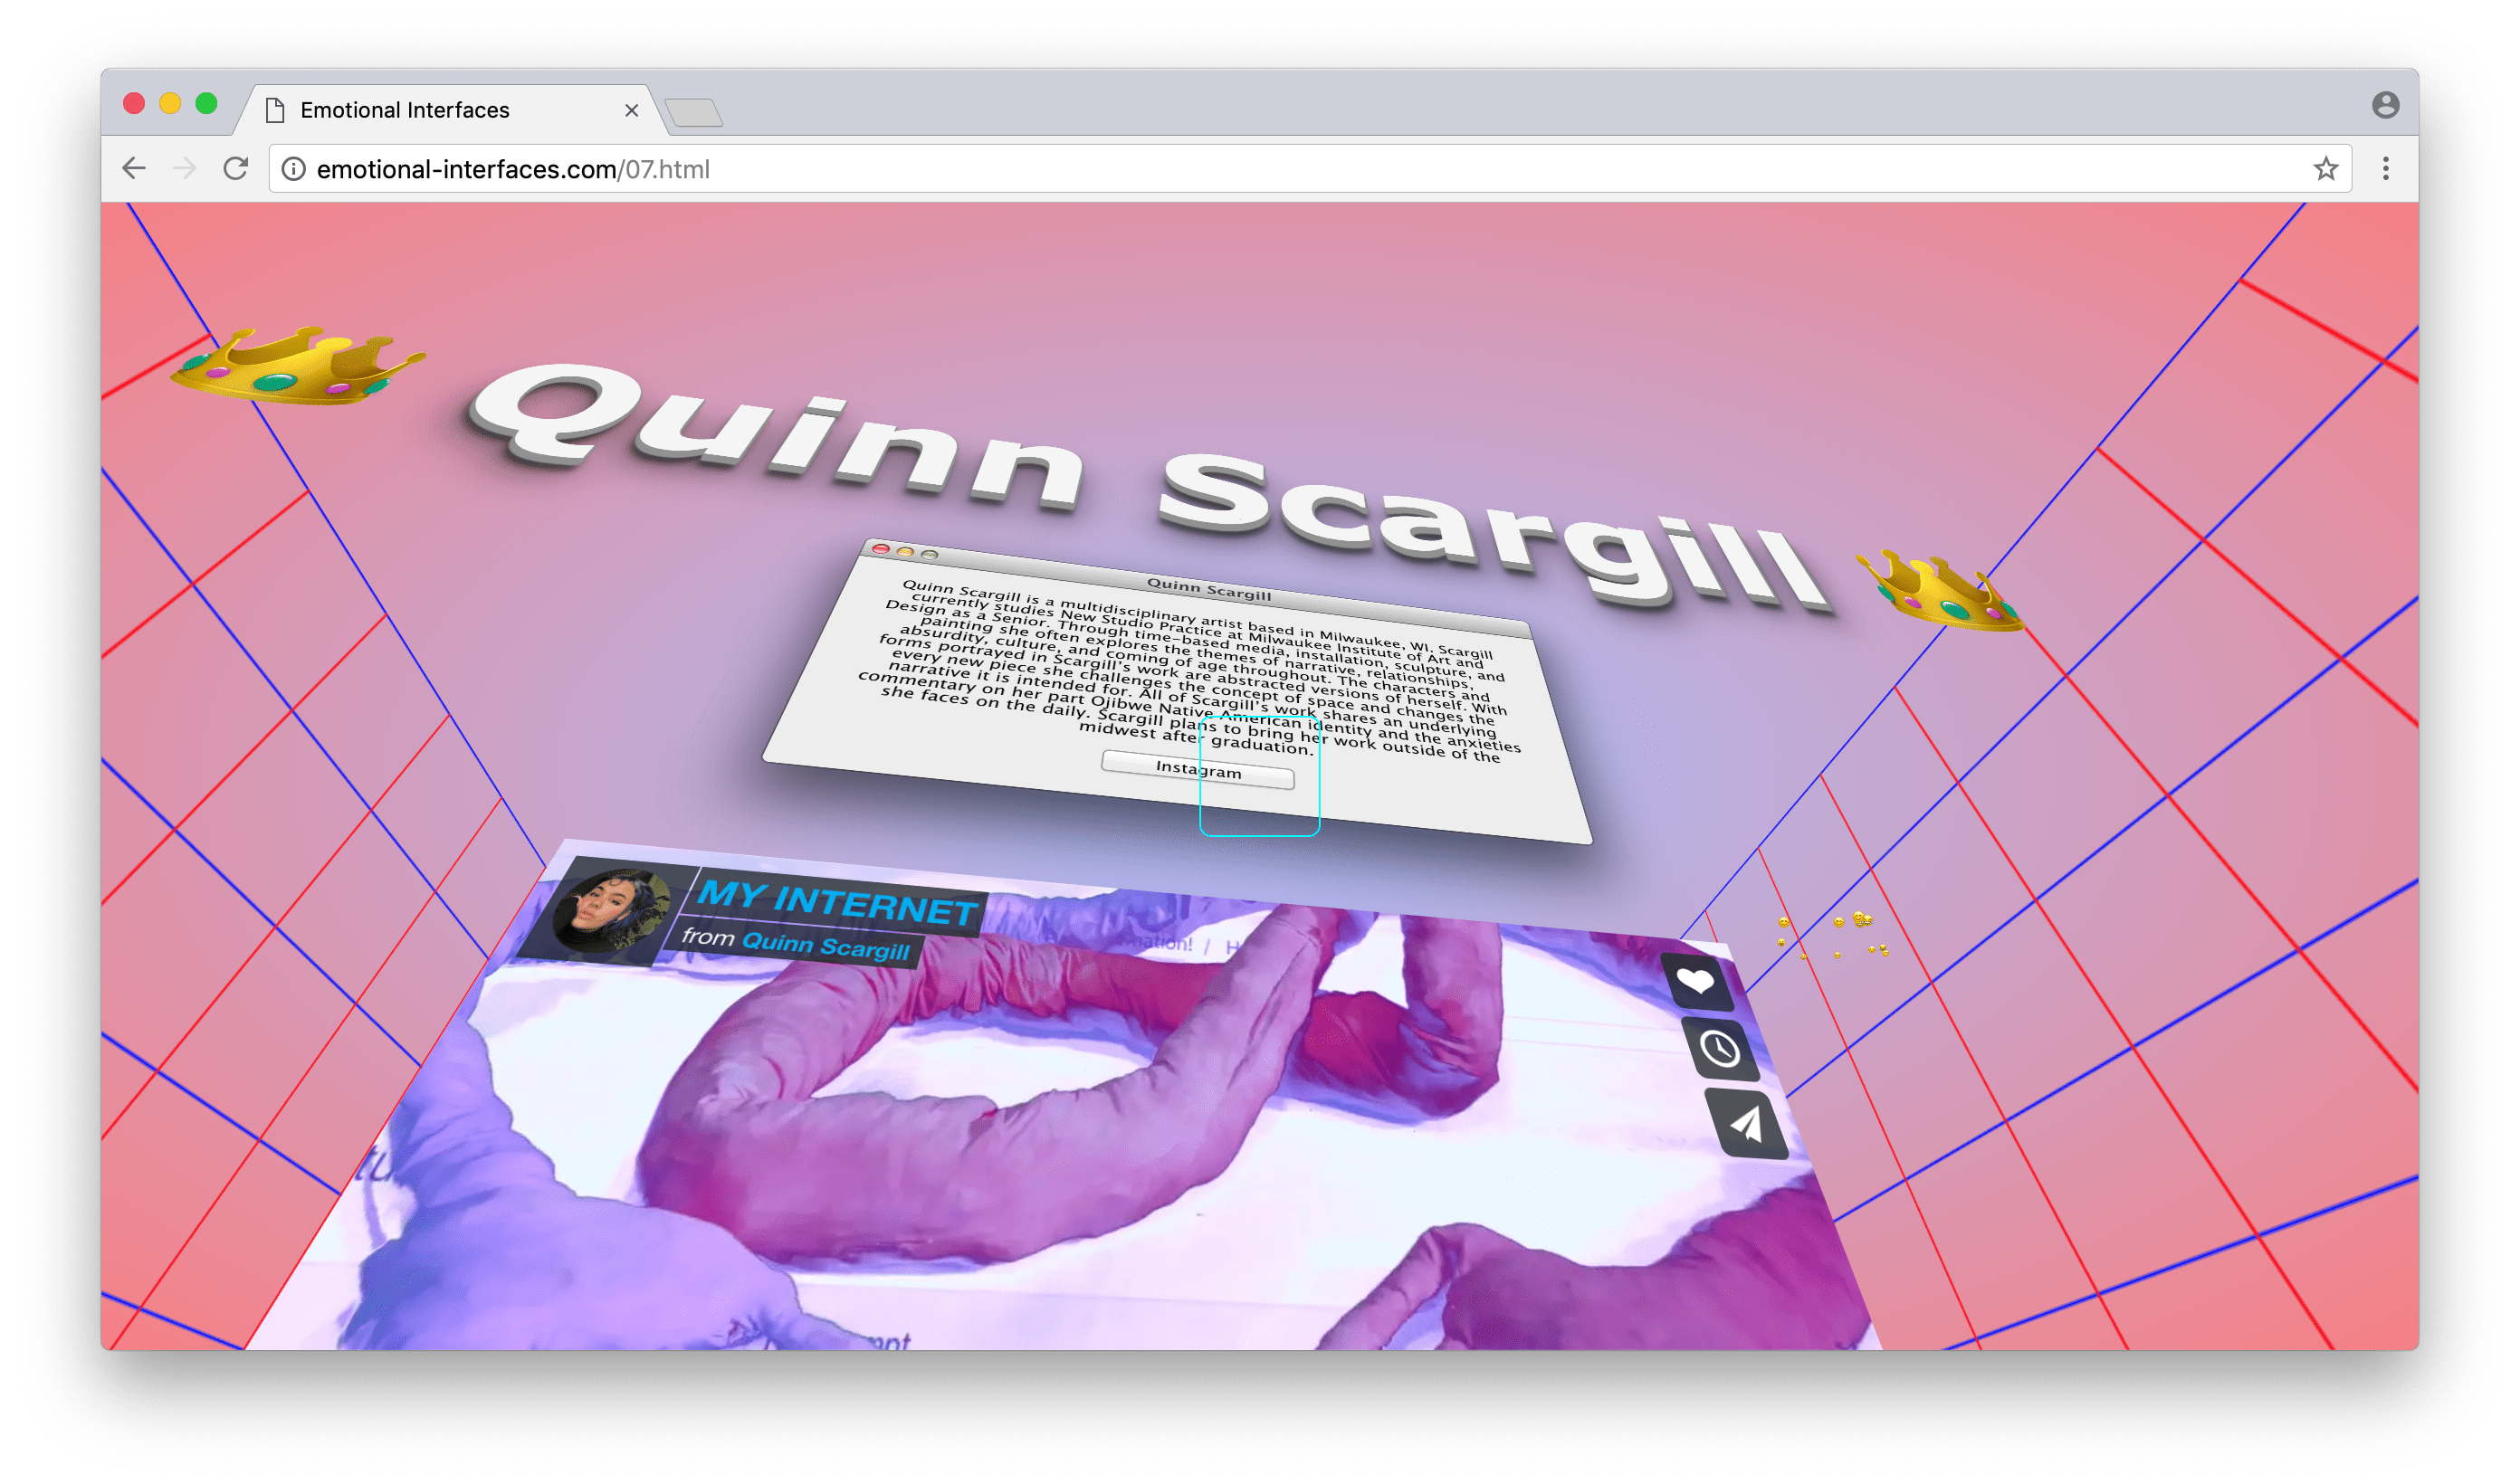 Quinn Scargill at Emotional Interfaces' online exhibition